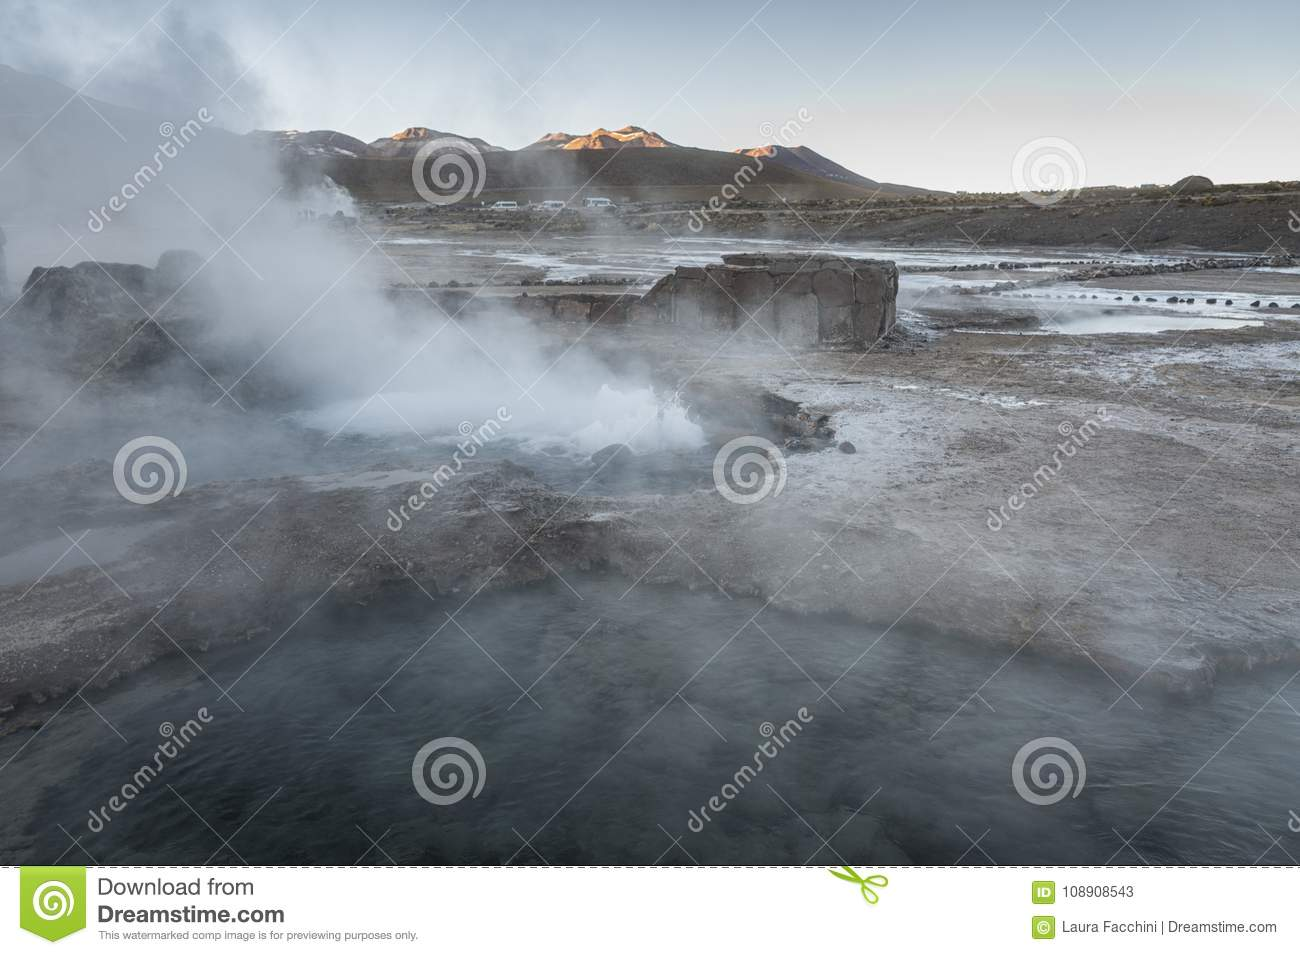 El Tatio geysers, the biggest geysers of the southern hemisphere close to the plateau of San Pedro de Atacama, Calama, Antofagasta